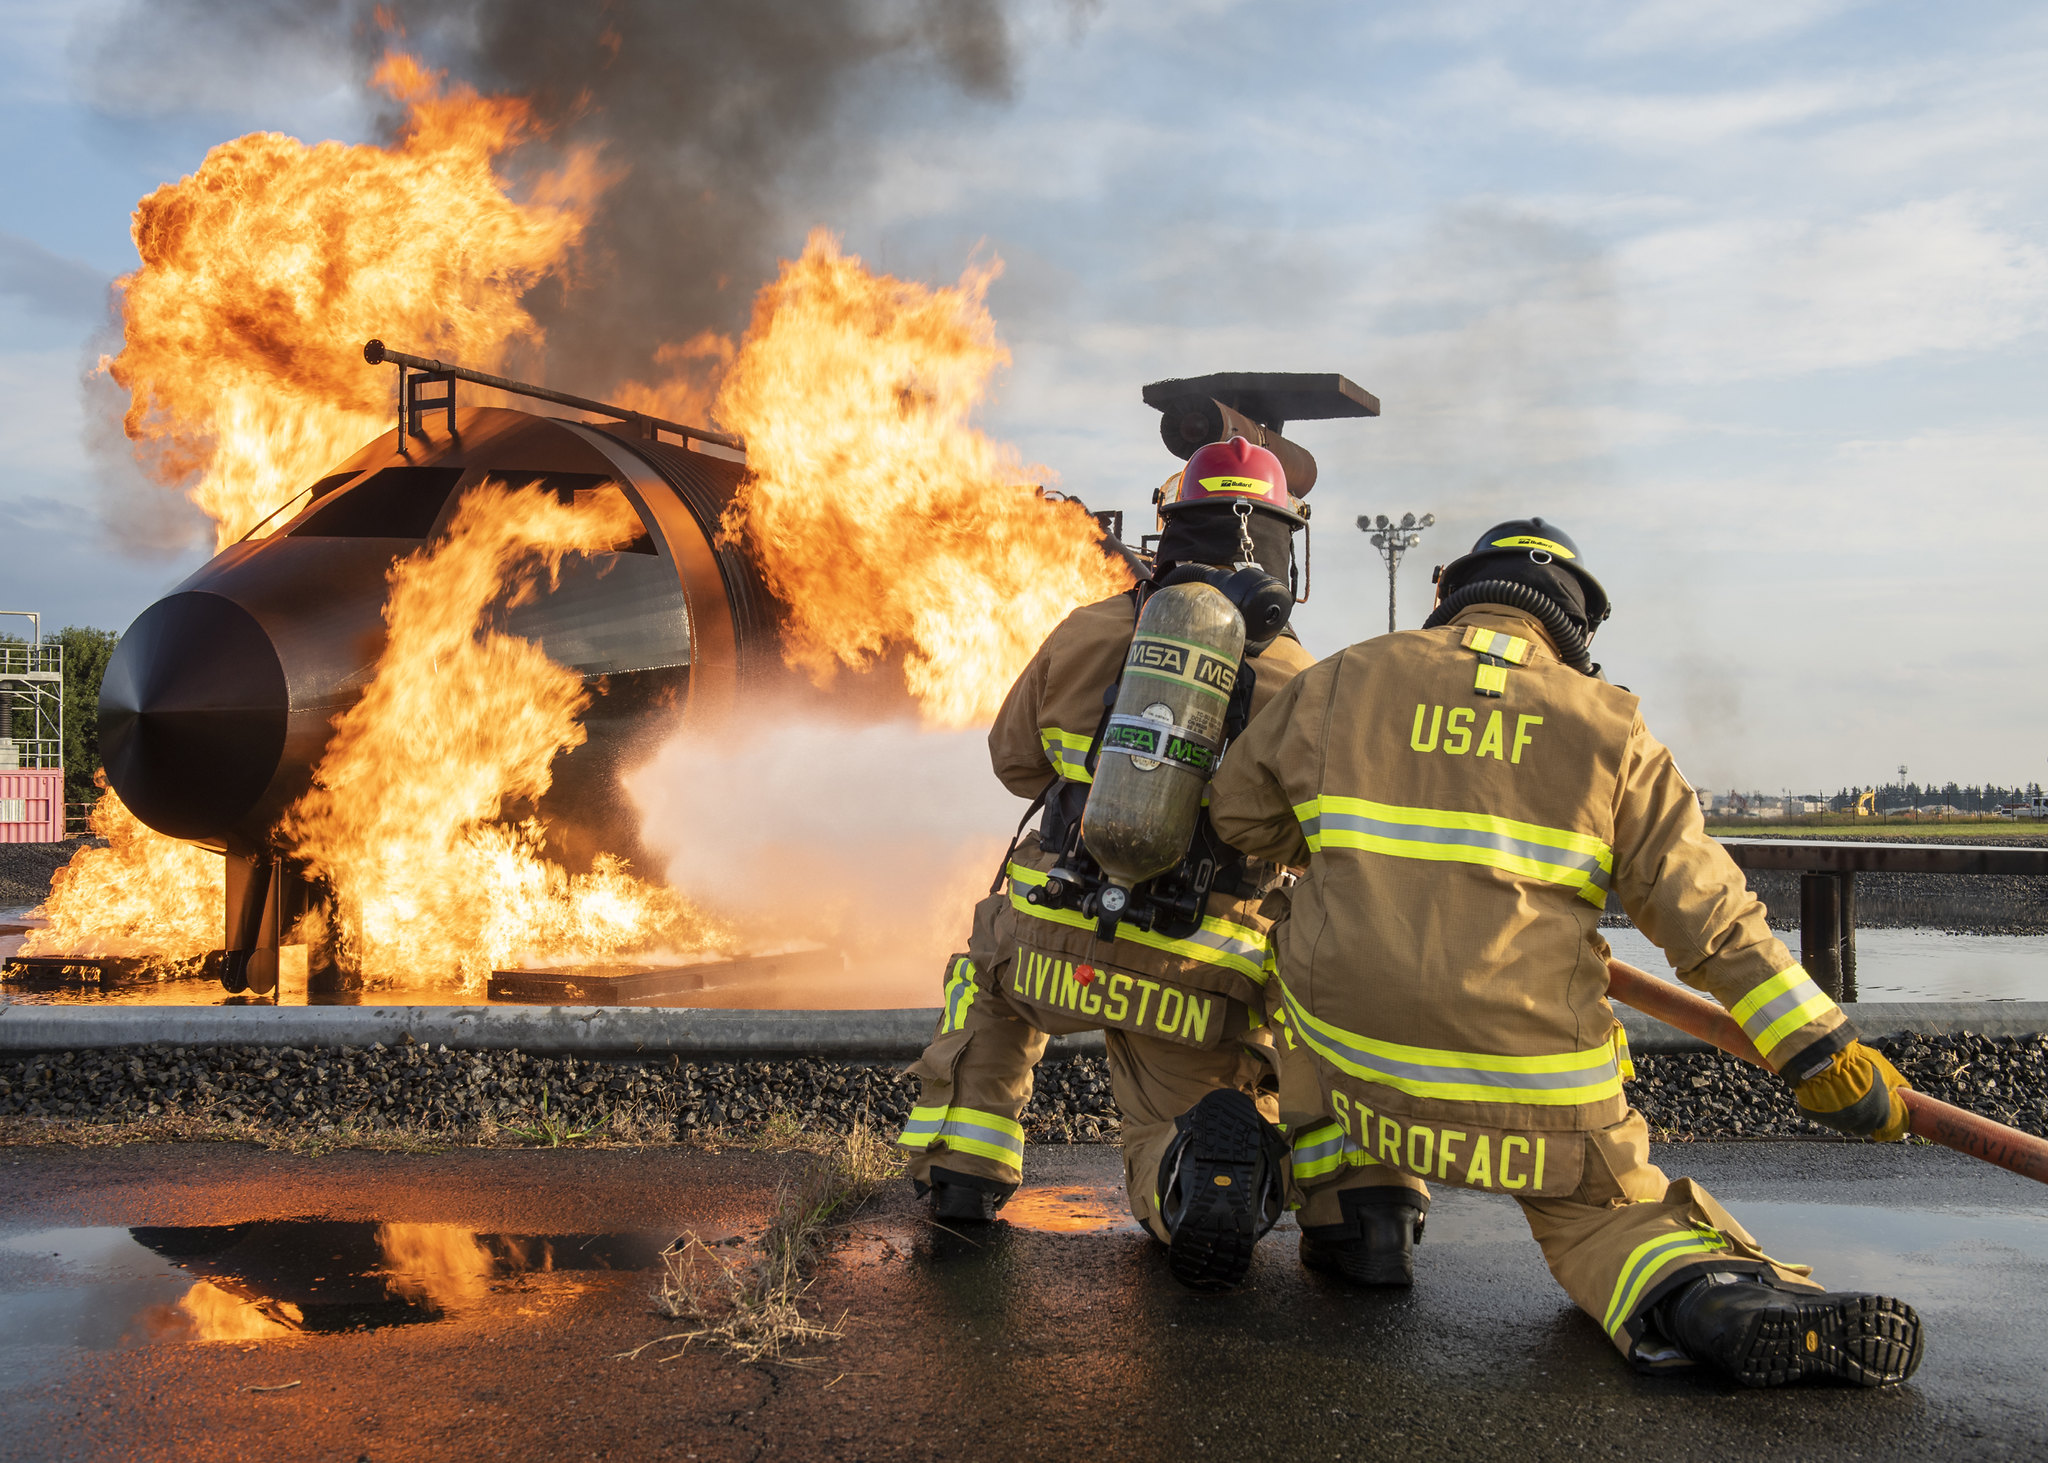 Staff Sgt. Dillon Livingston, left, and Senior Airman Jade Strofaci, 374th Civil Engineer Squadron firefighters, participate in a live-fire training scenario, Oct. 27, 2020, at Yokota Air Base, Japan. (Staff Sgt. Juan Torres/Air Force)